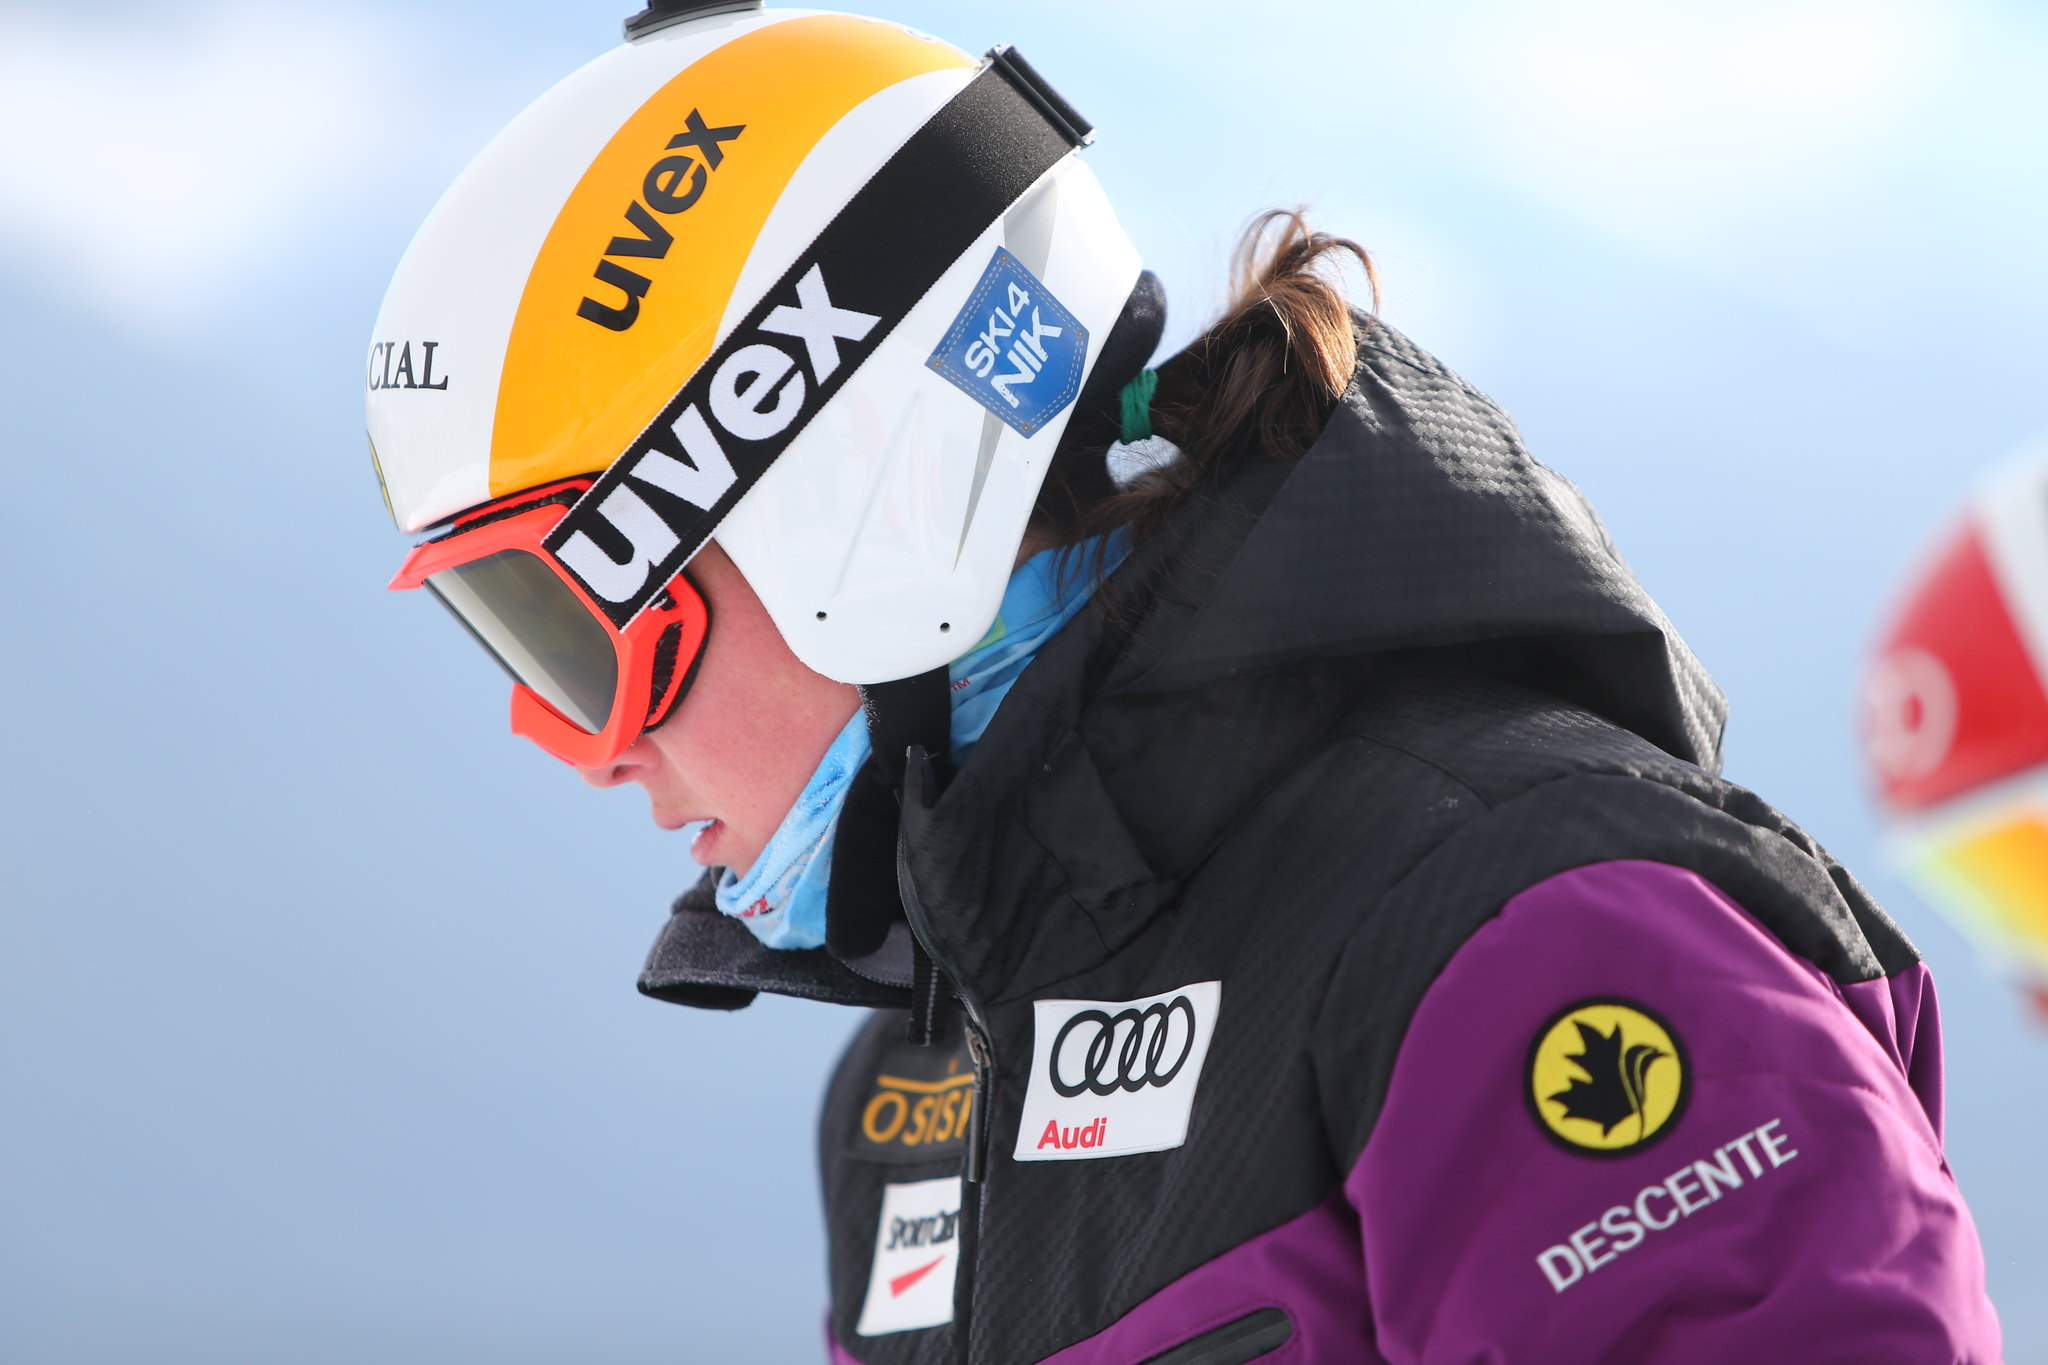 Marielle Thompson during training at the FIS Ski Cross World Cup in Nakiska, CAN